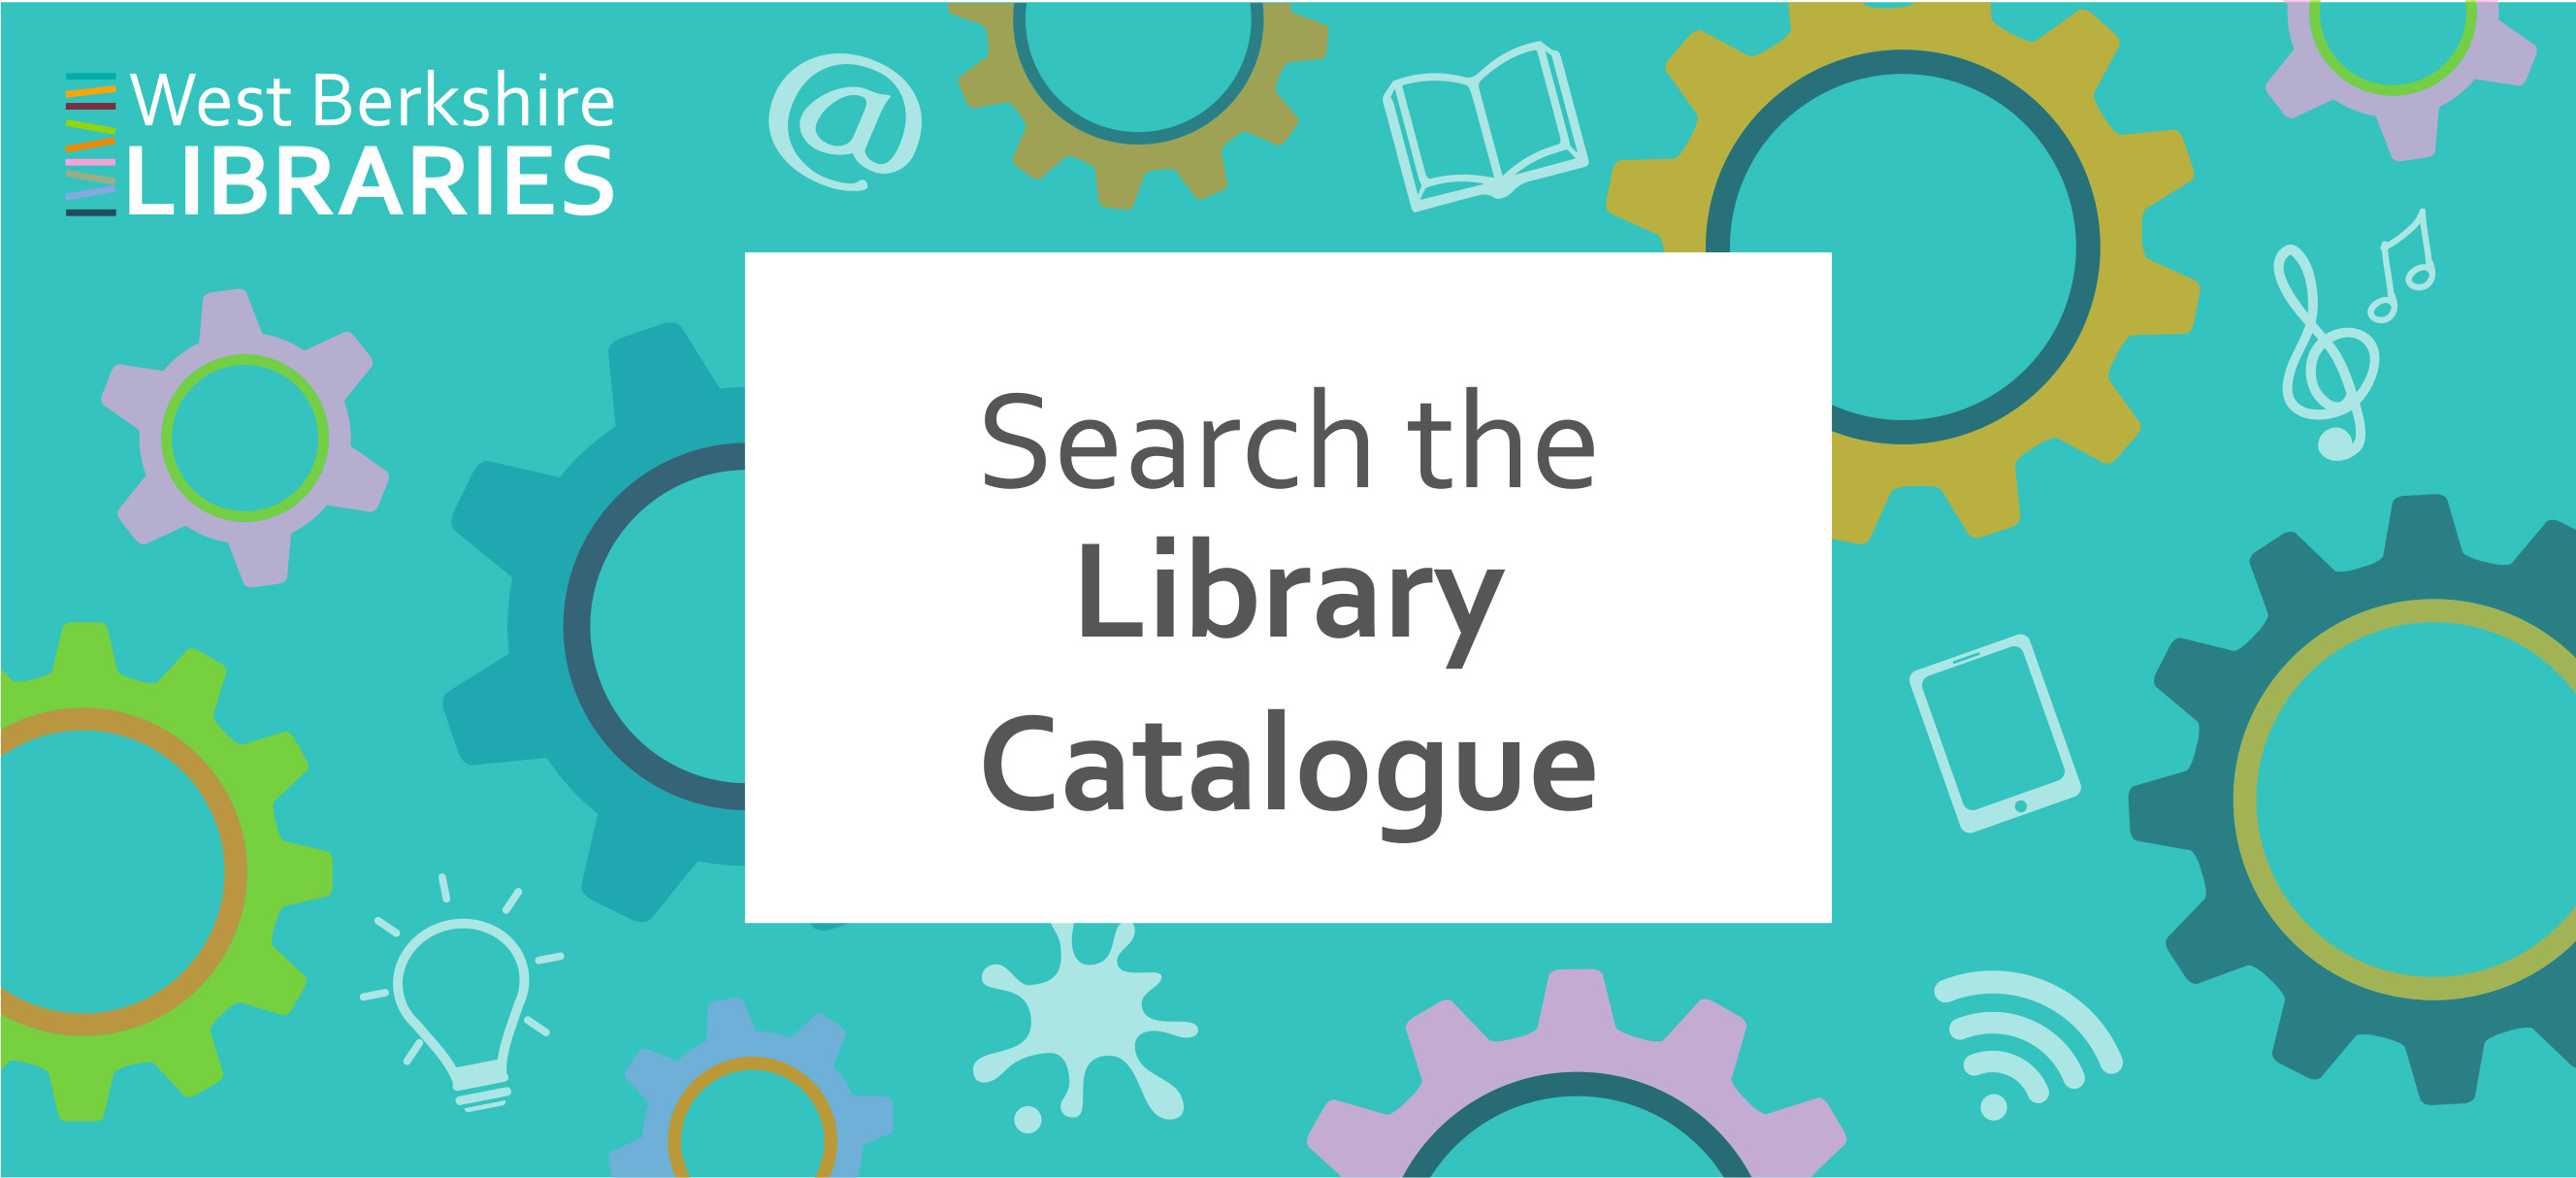 Go to Search the Library Catalogue